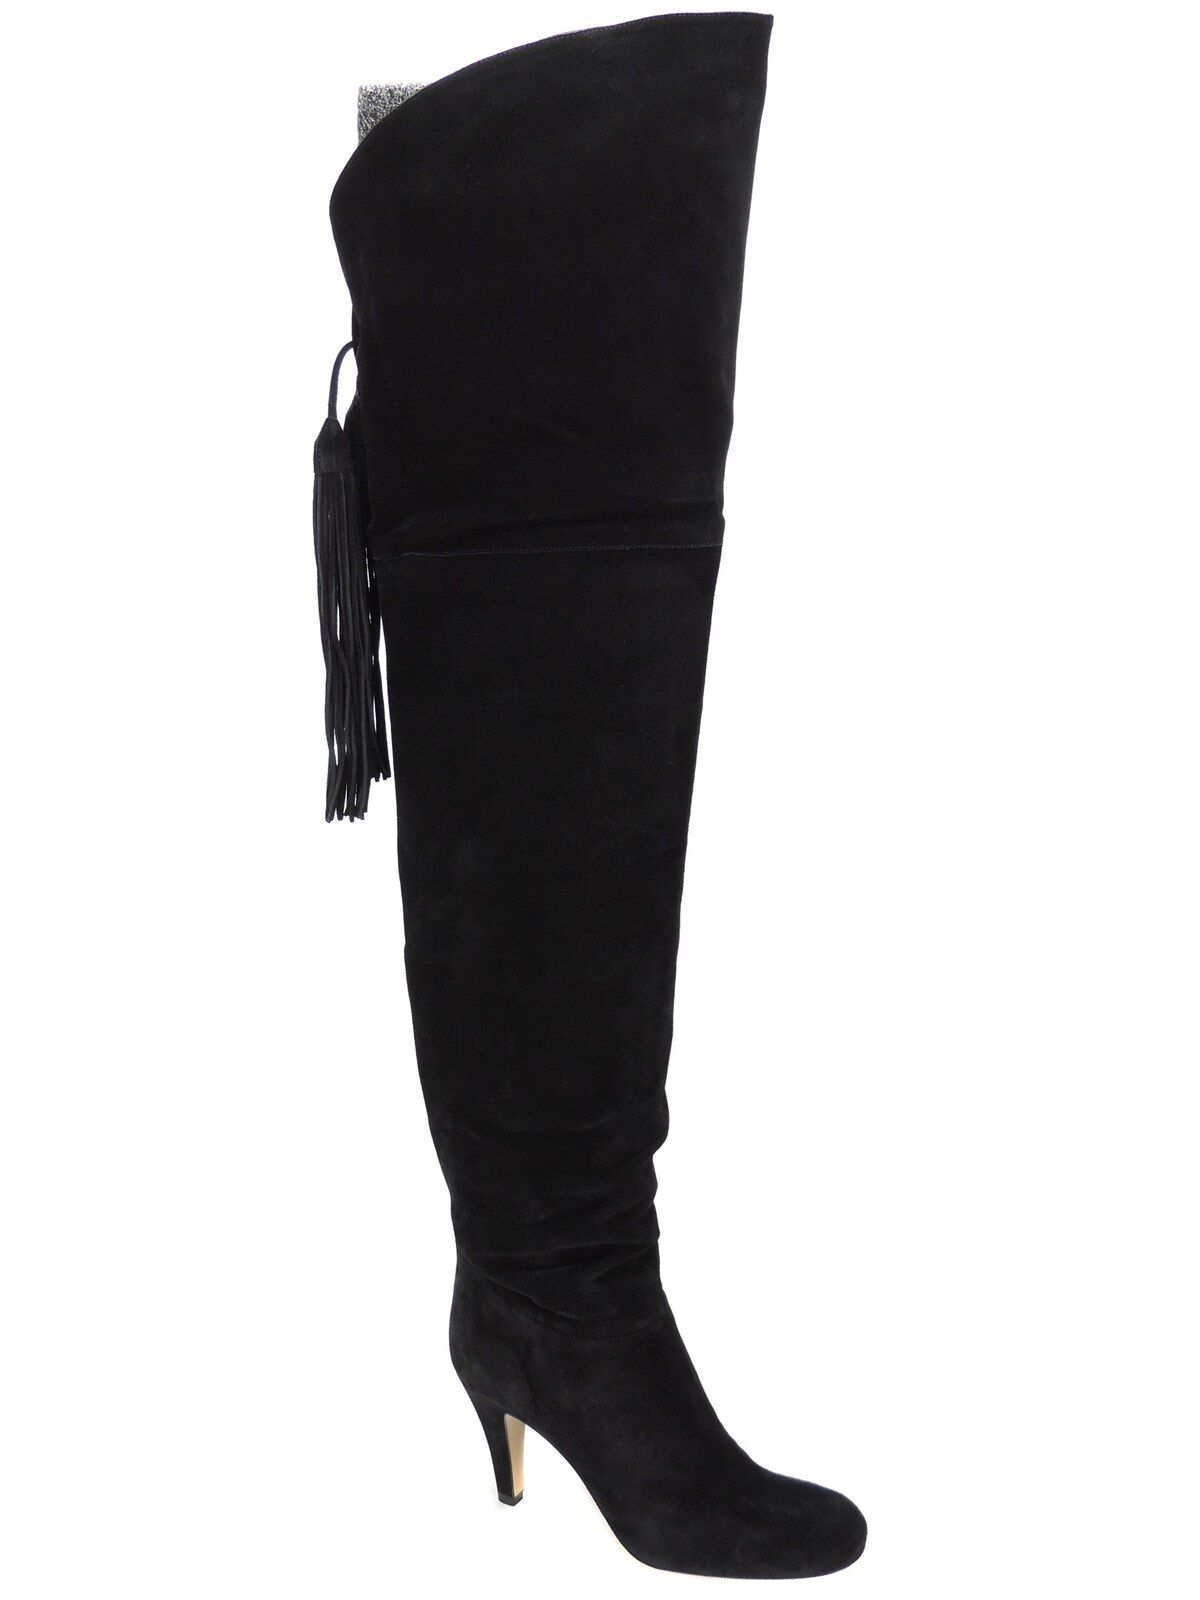 Chloé Women's Fringe Cuissar Tie Back Over the Knee Boots Black /US 6.5M